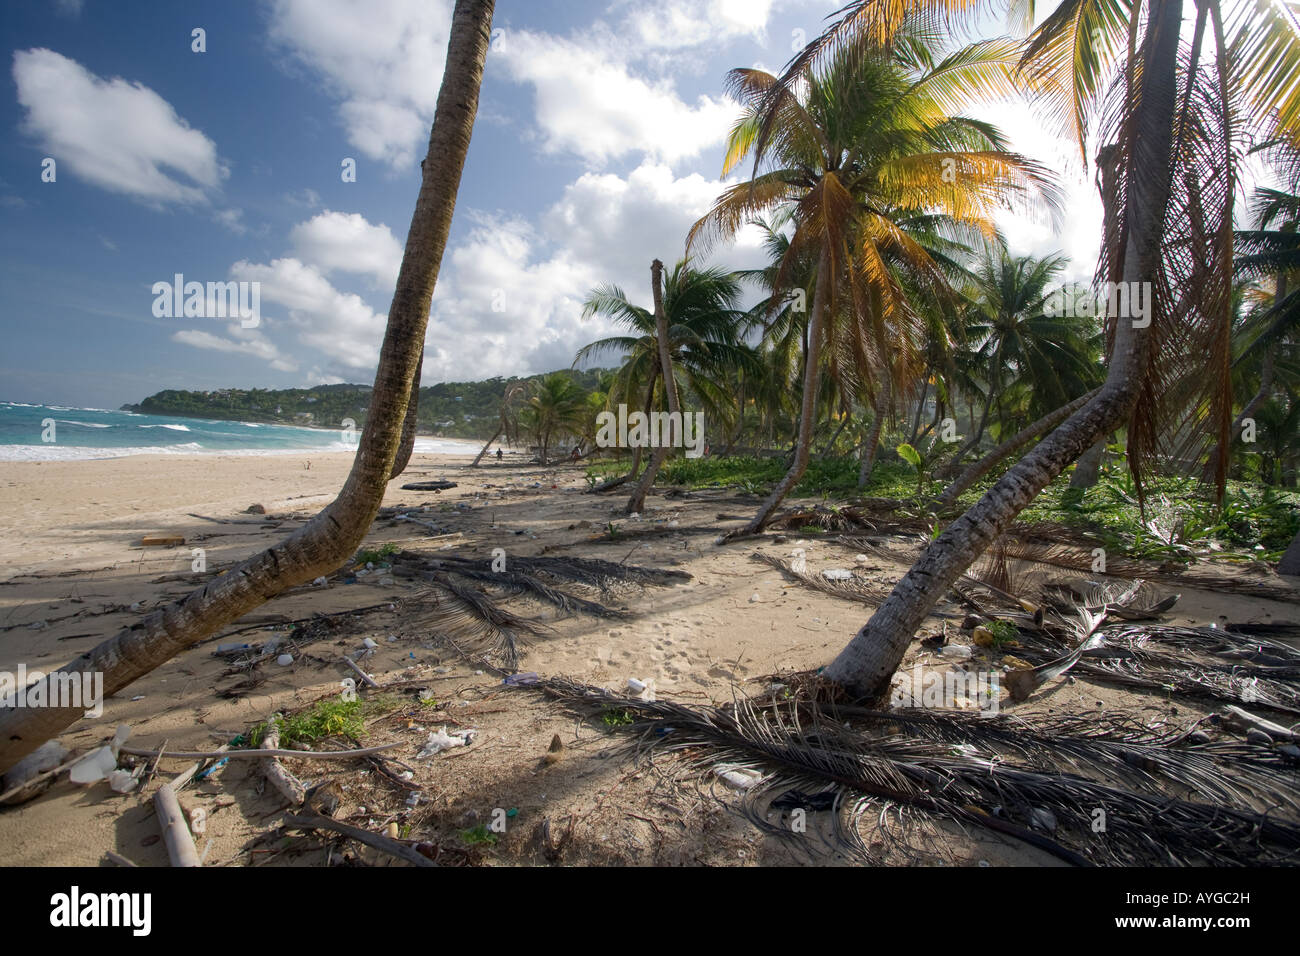 Jamaica Long bay at east coast after Hurricane Dean destroyd palm trees and beach bars and houses - Stock Image